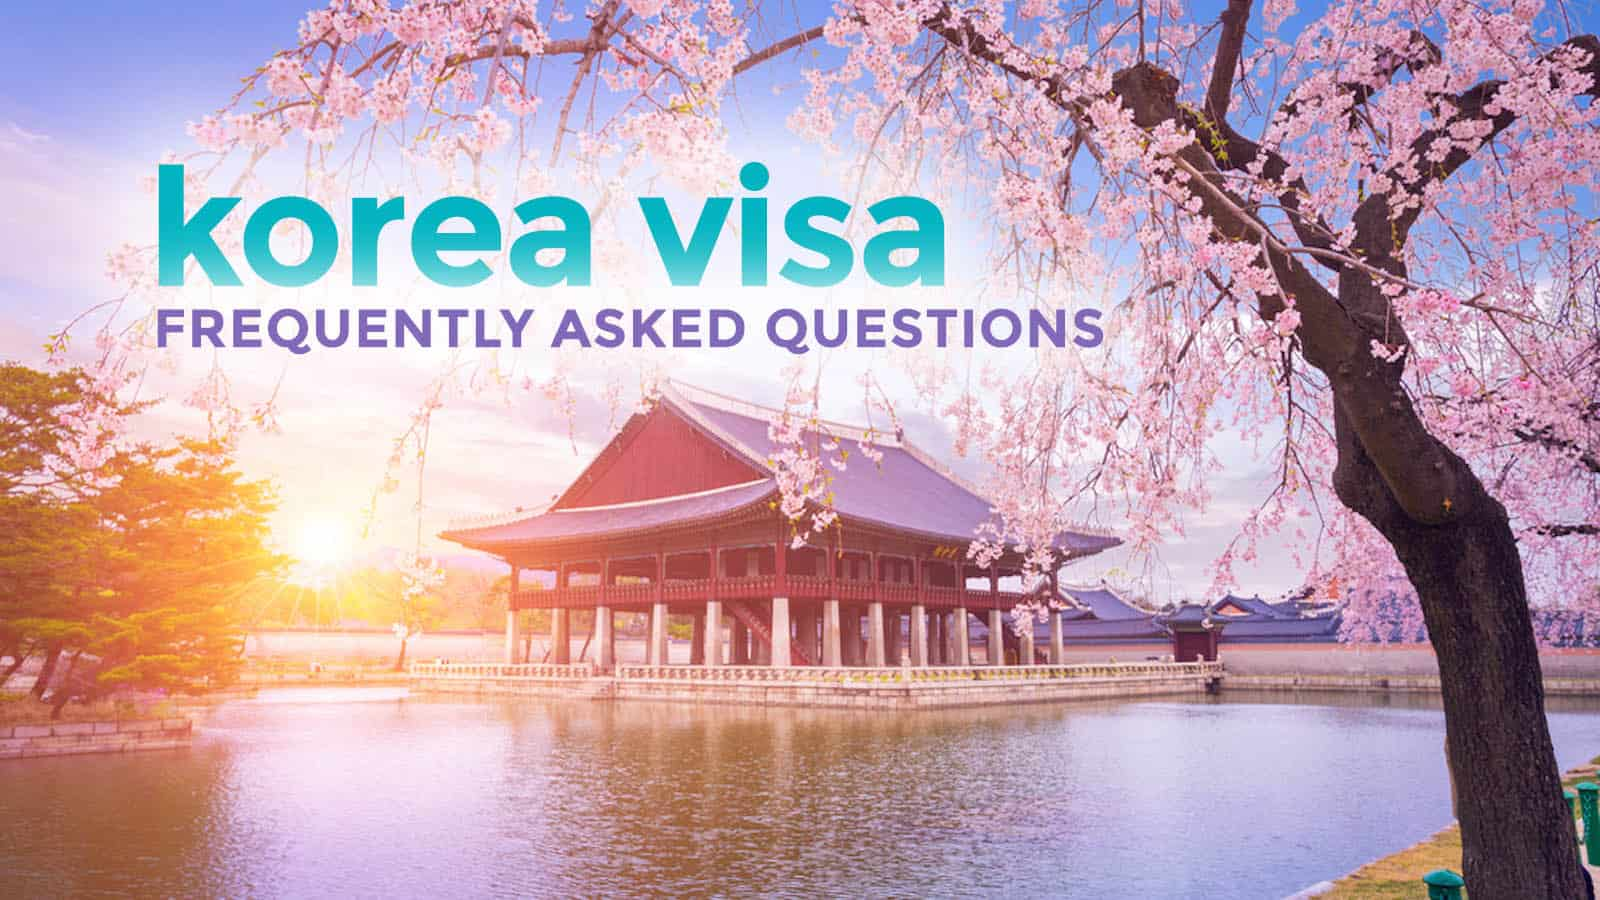 Korea Visa For Filipinos Frequently Asked Questions With Answers